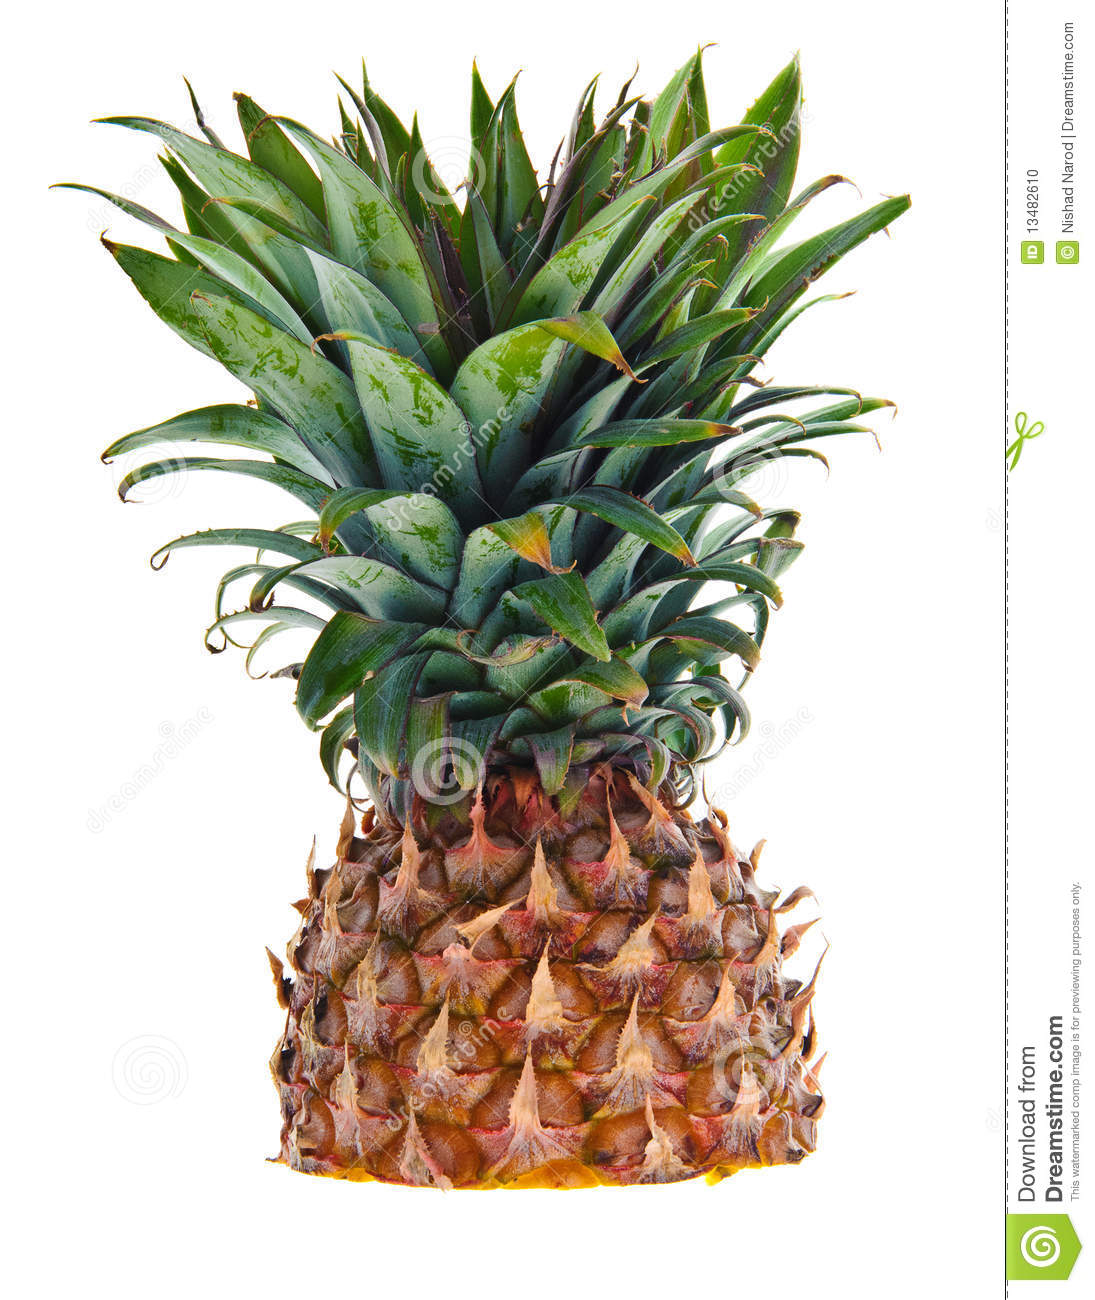 Find great deals on eBay for white pineapple. Shop with confidence.